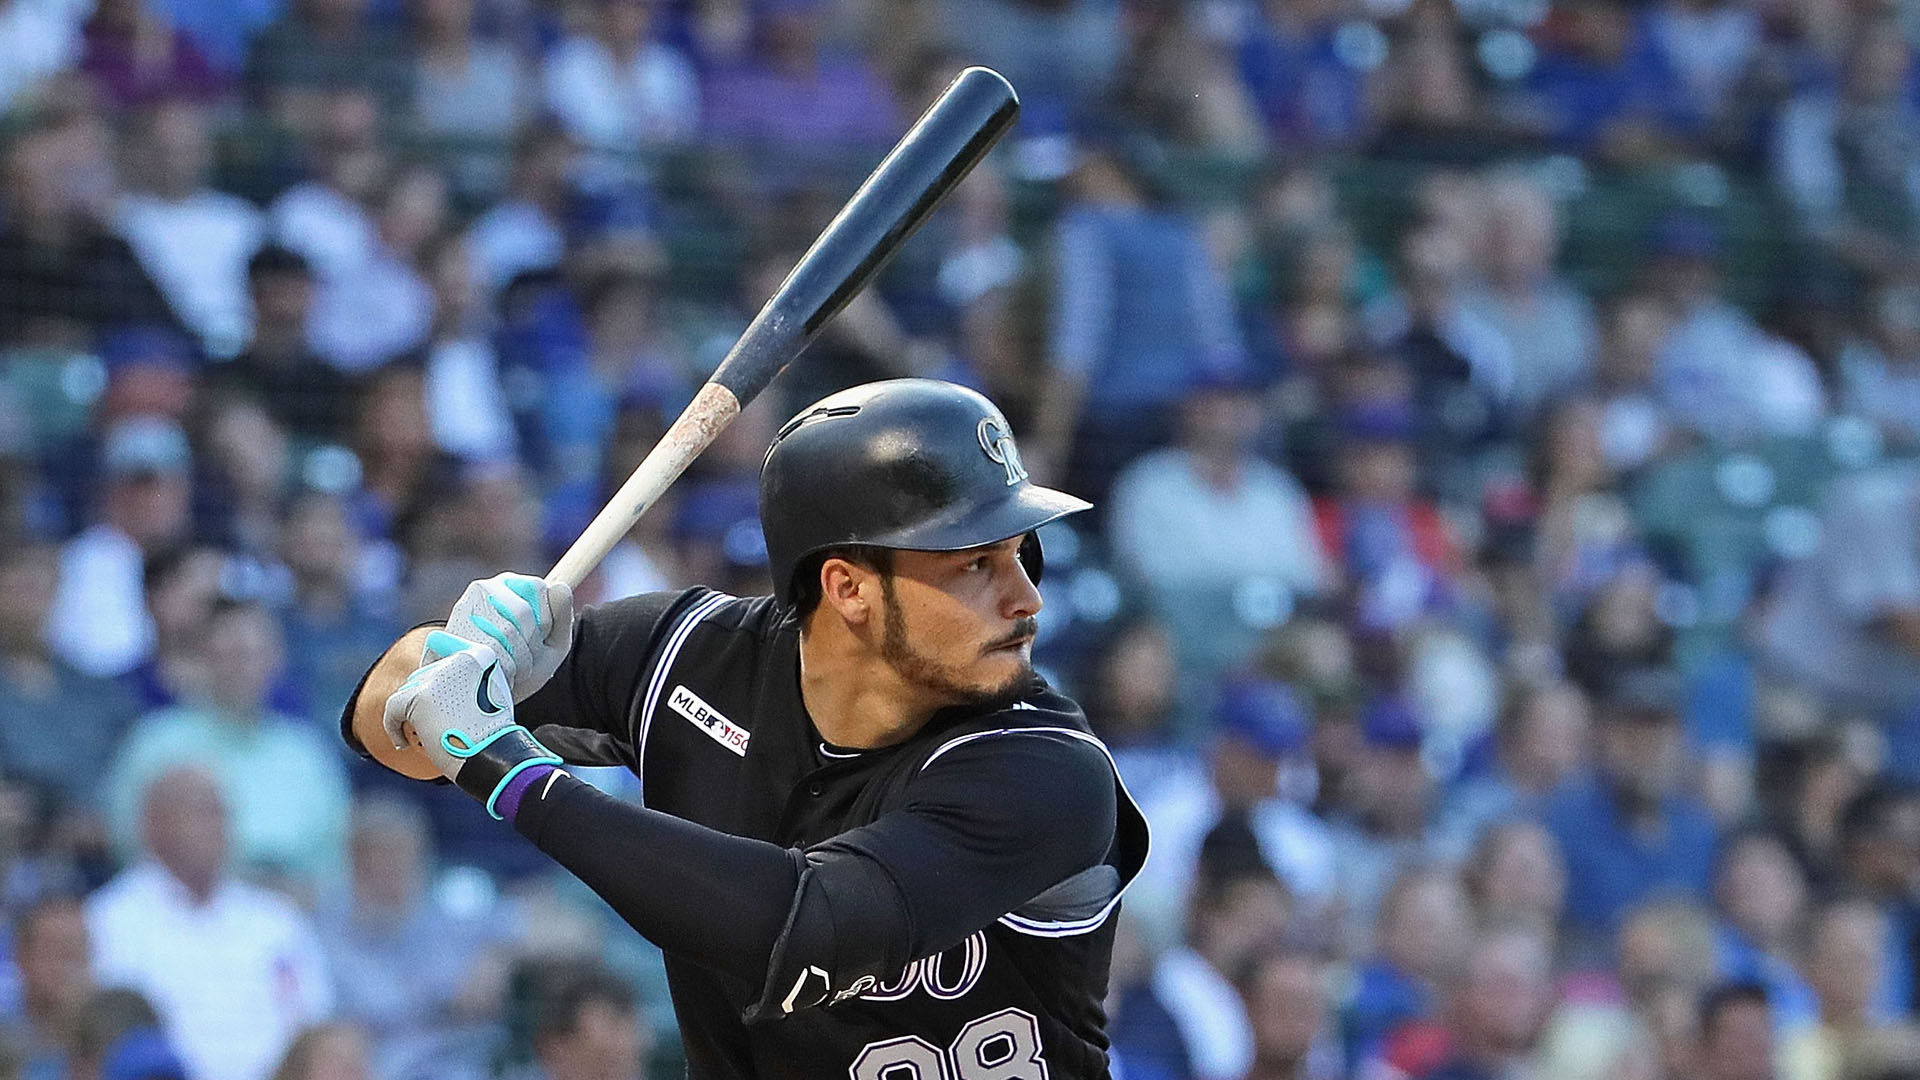 Nolan Arenado left Wednesday's game after being hit by a pitch from Cole Hamels.